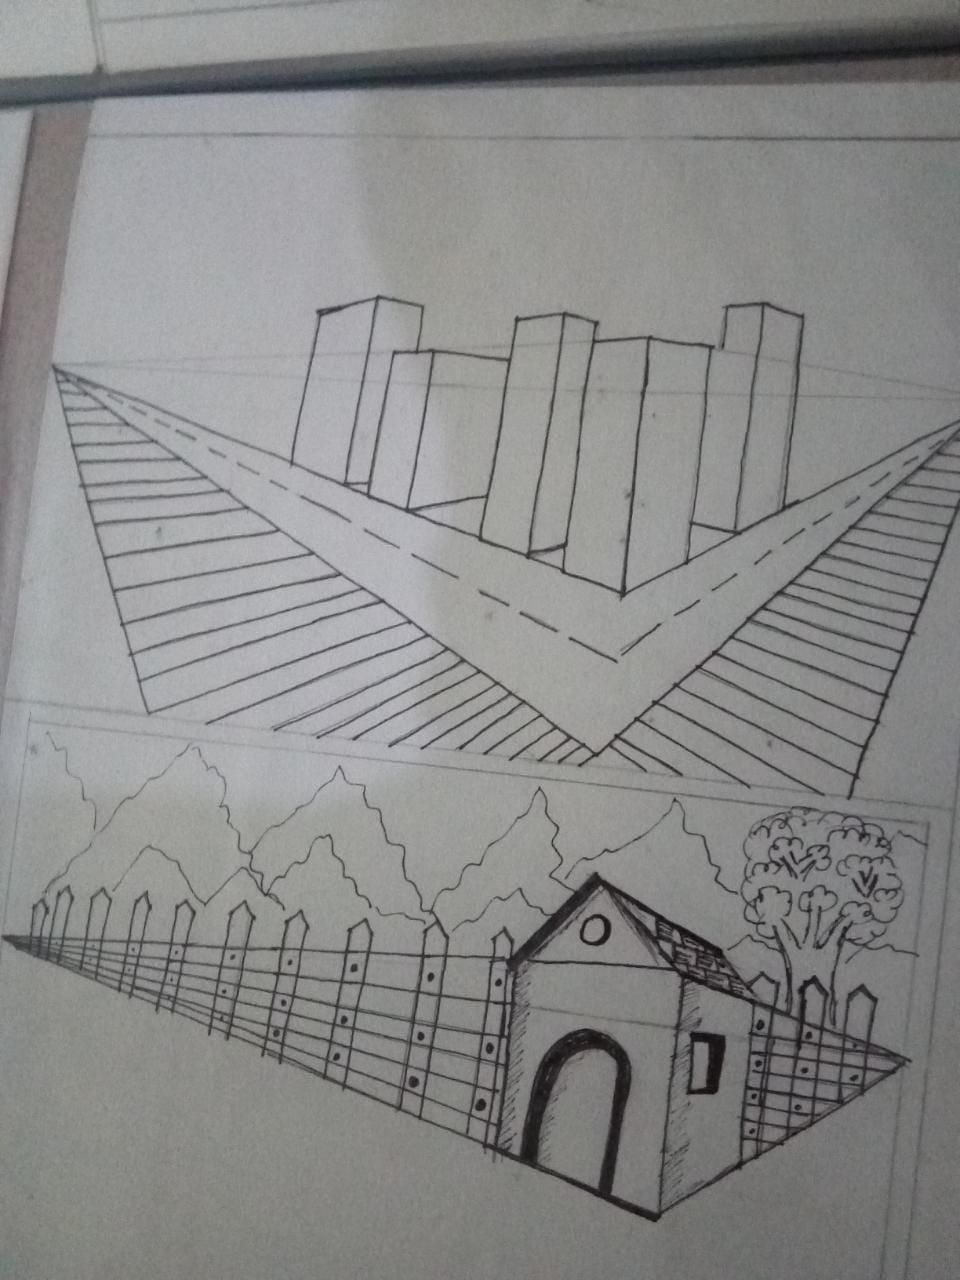 Perspective - image 2 - student project